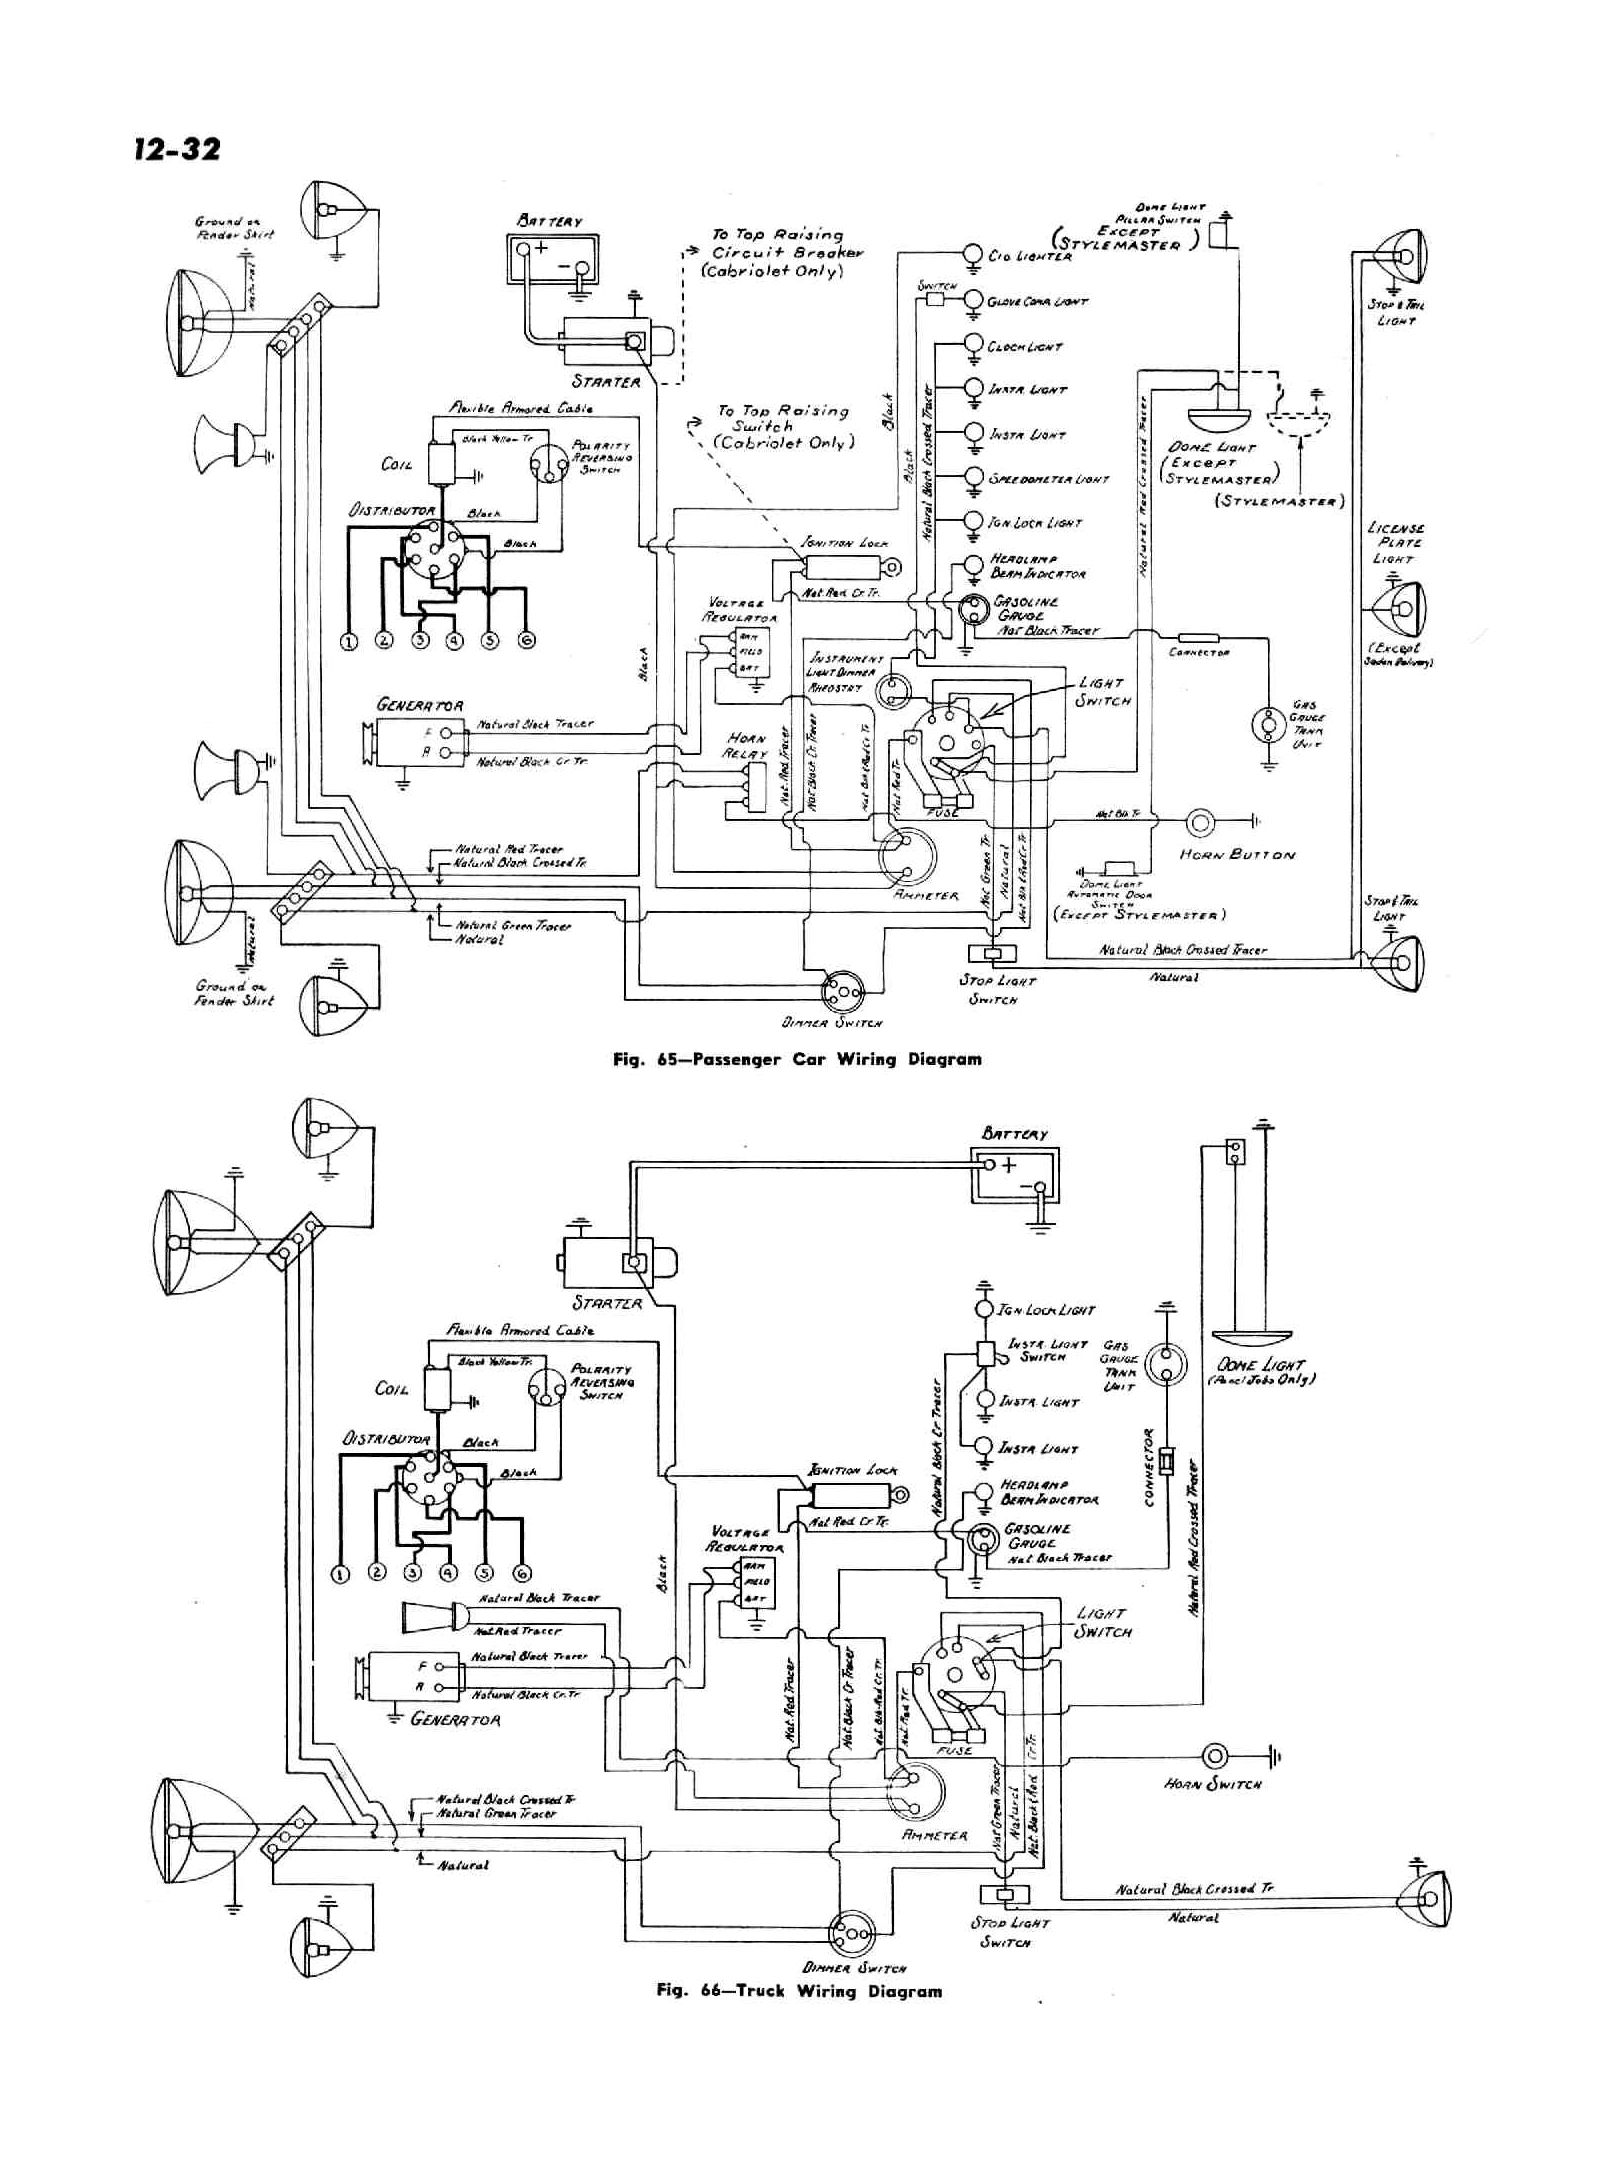 Magnificent For 1942 Chevrolet 11 2 Ton Lc 4X2 Truckcar Wiring Diagram Wiring Cloud Ostrrenstrafr09Org